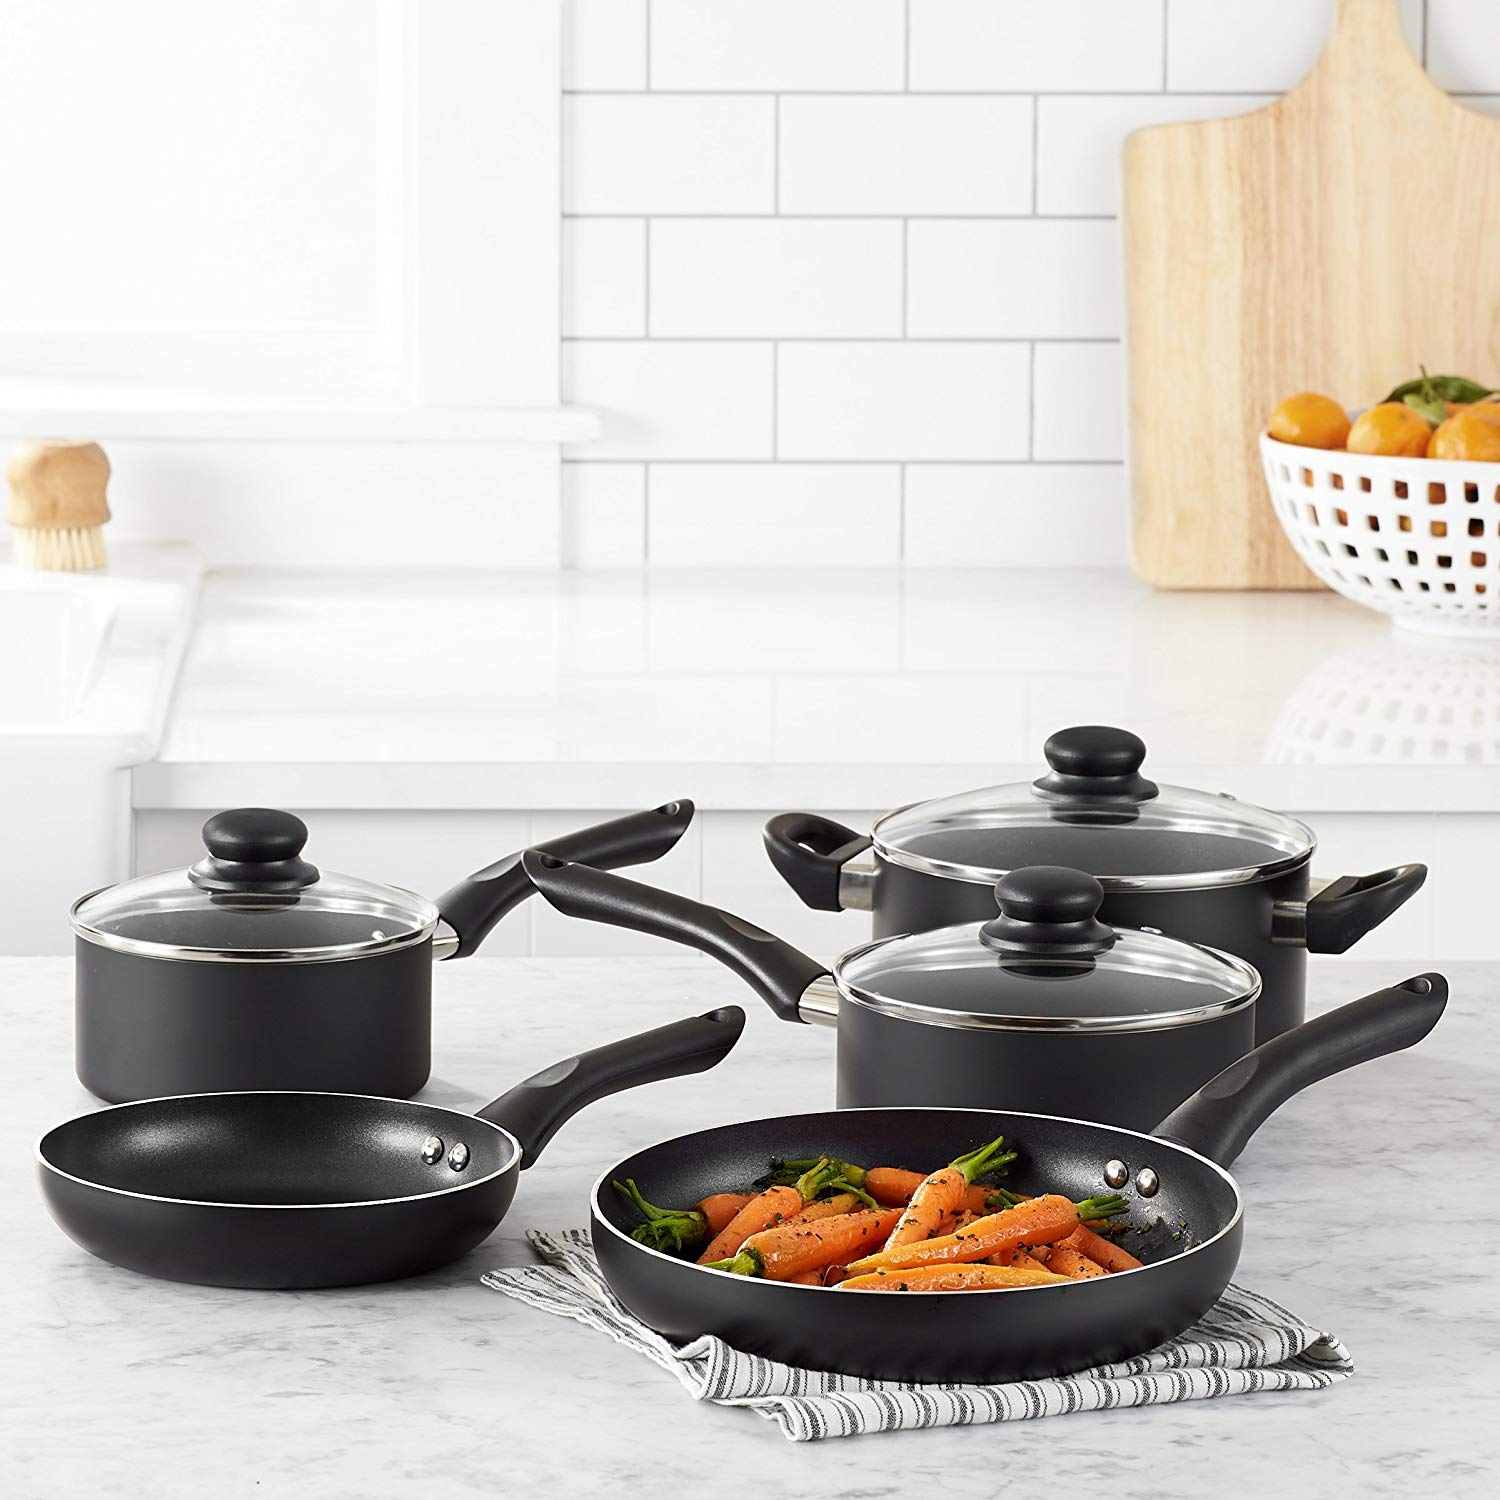 5 Useful Shopping Tips for Non-Stick Cookware